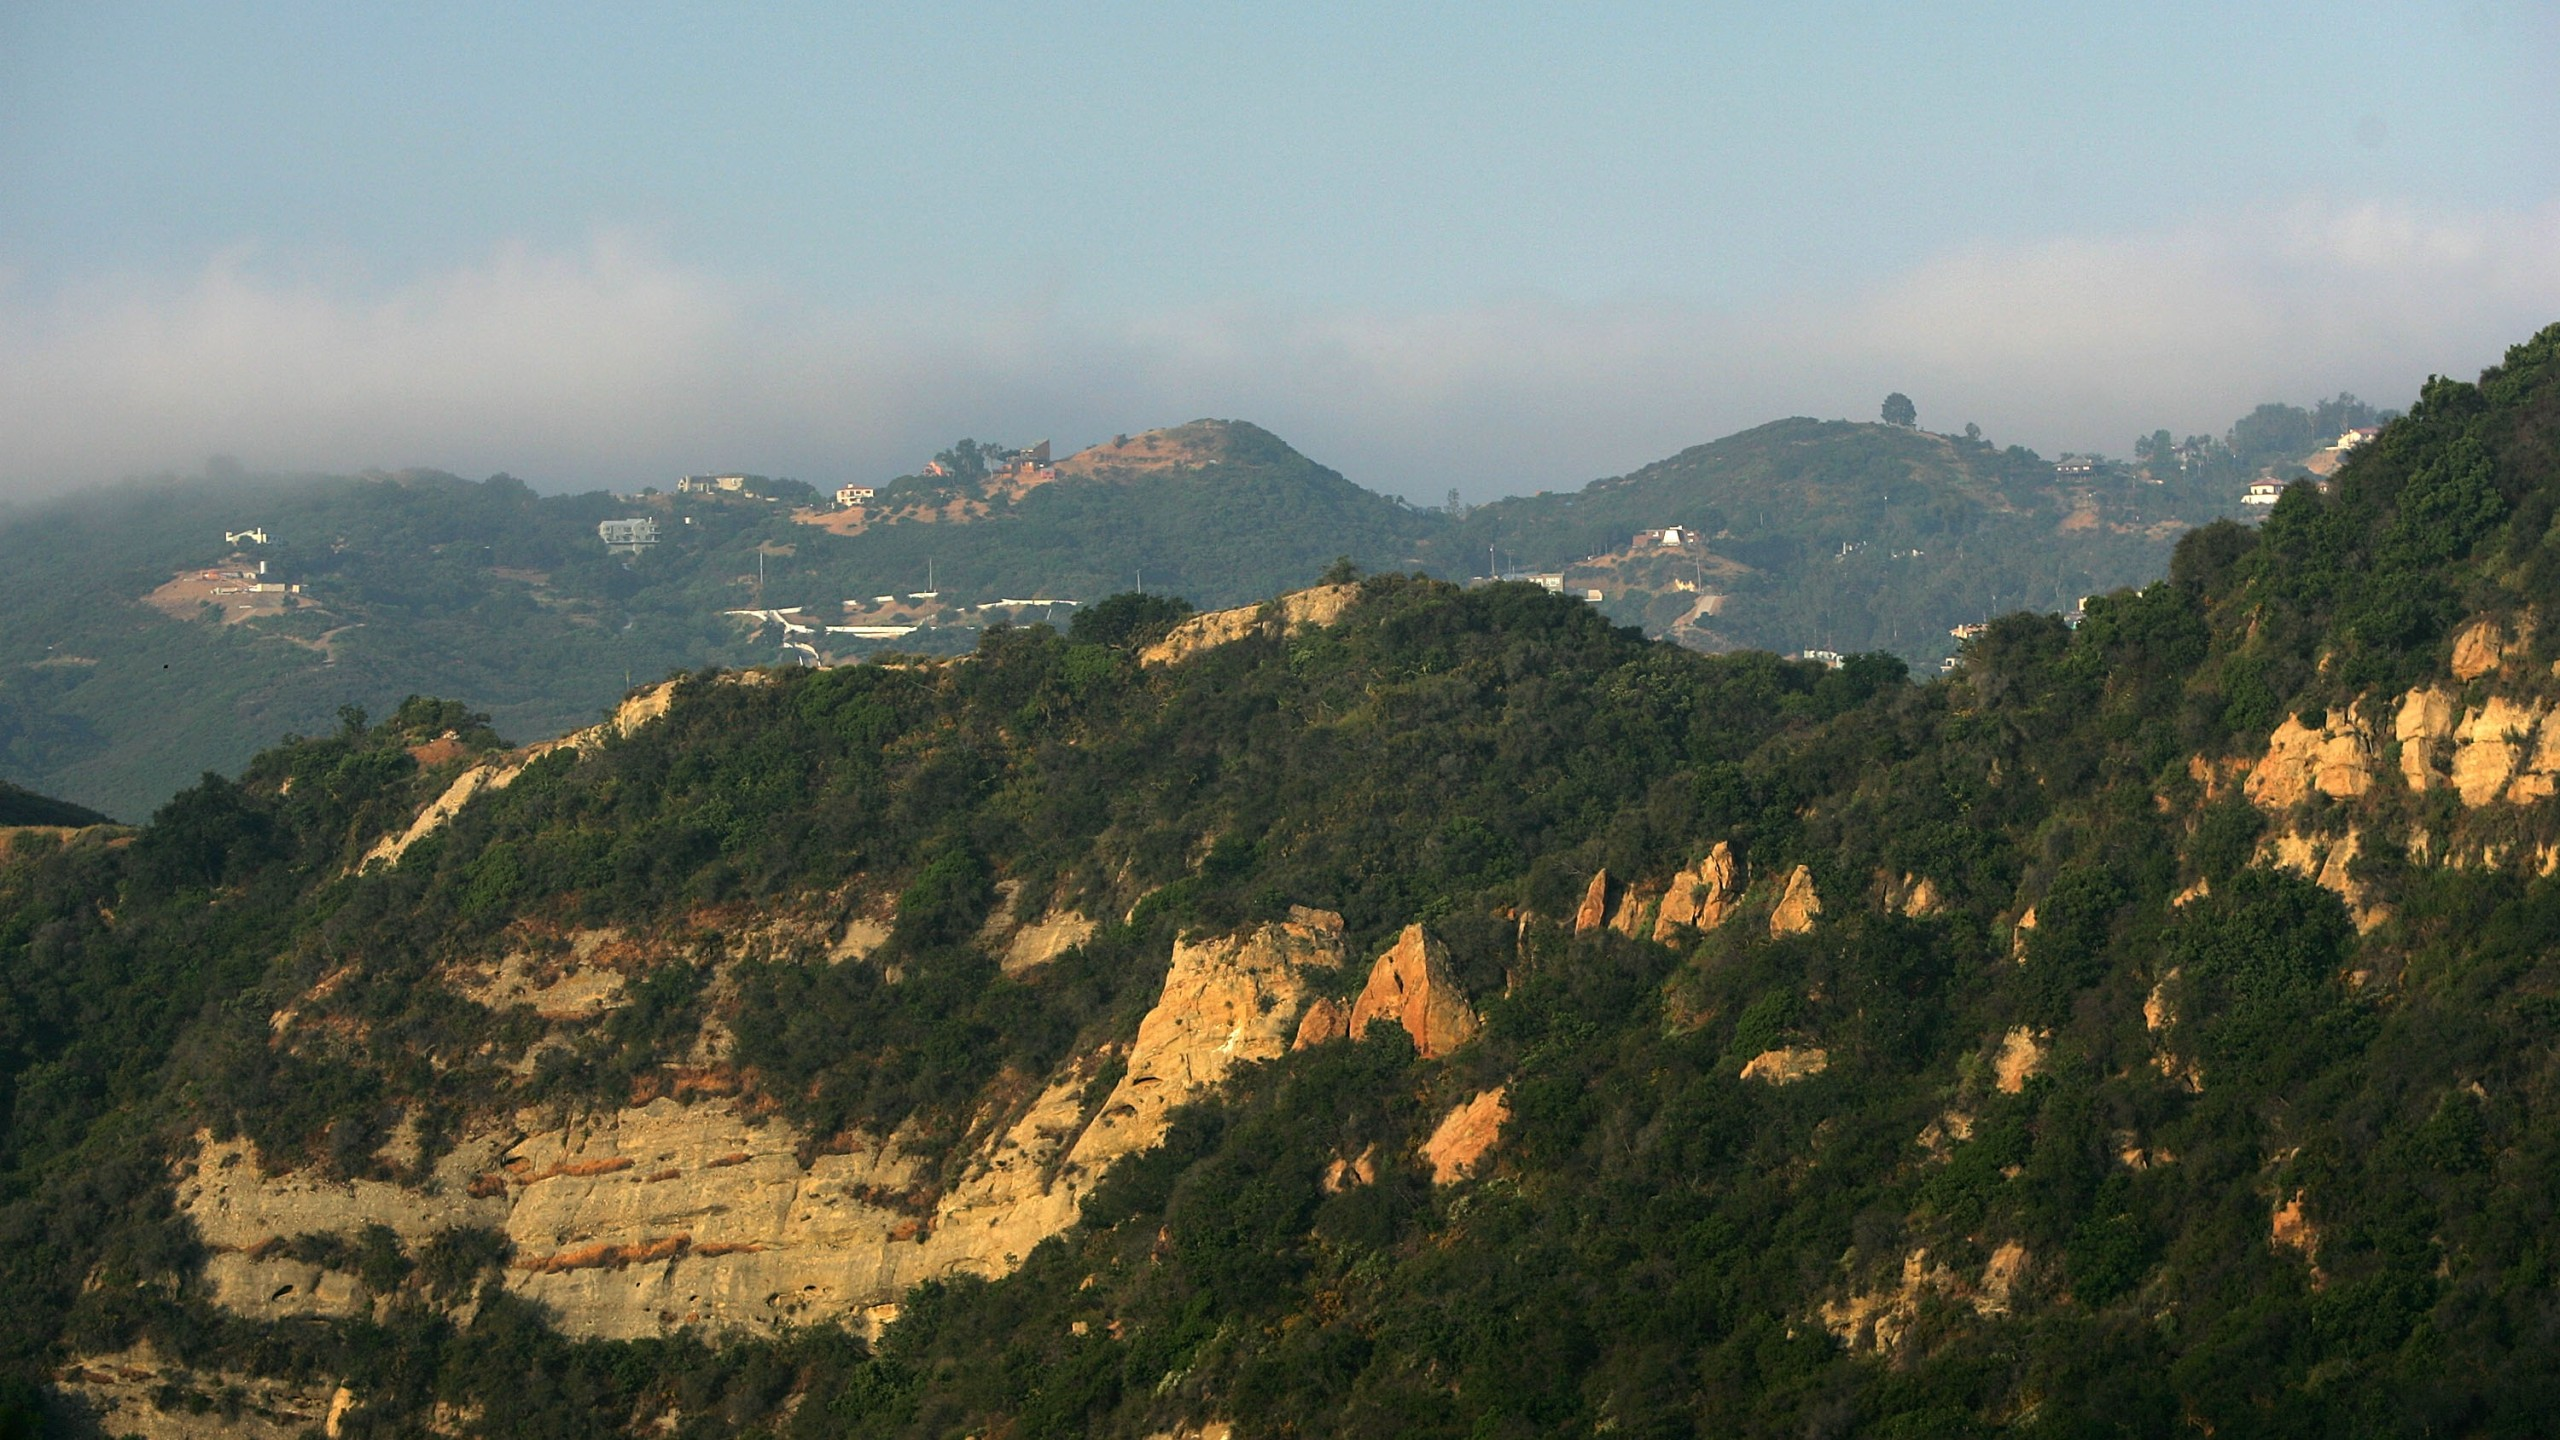 The hills above Santa Ynez Canyon in Topanga State Park are seen on May 21, 2008. (Credit: David McNew/Getty Images)